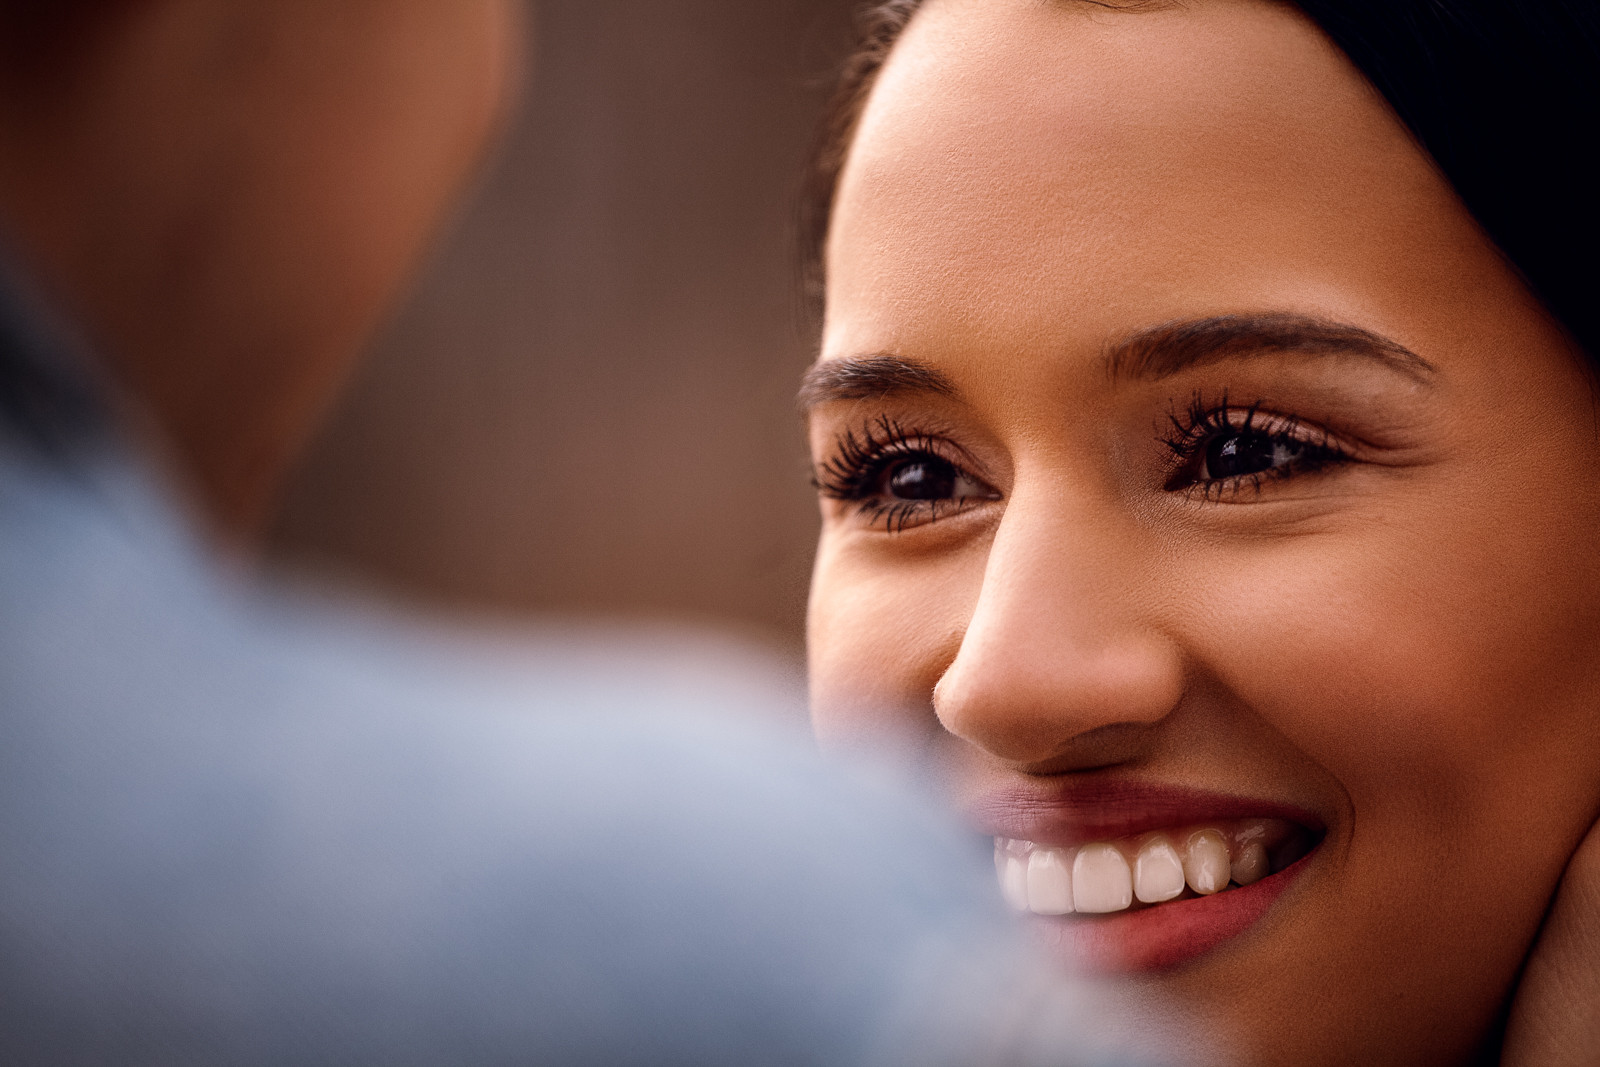 close-up of the girls face as they're looking at each other's with the love in her eyes